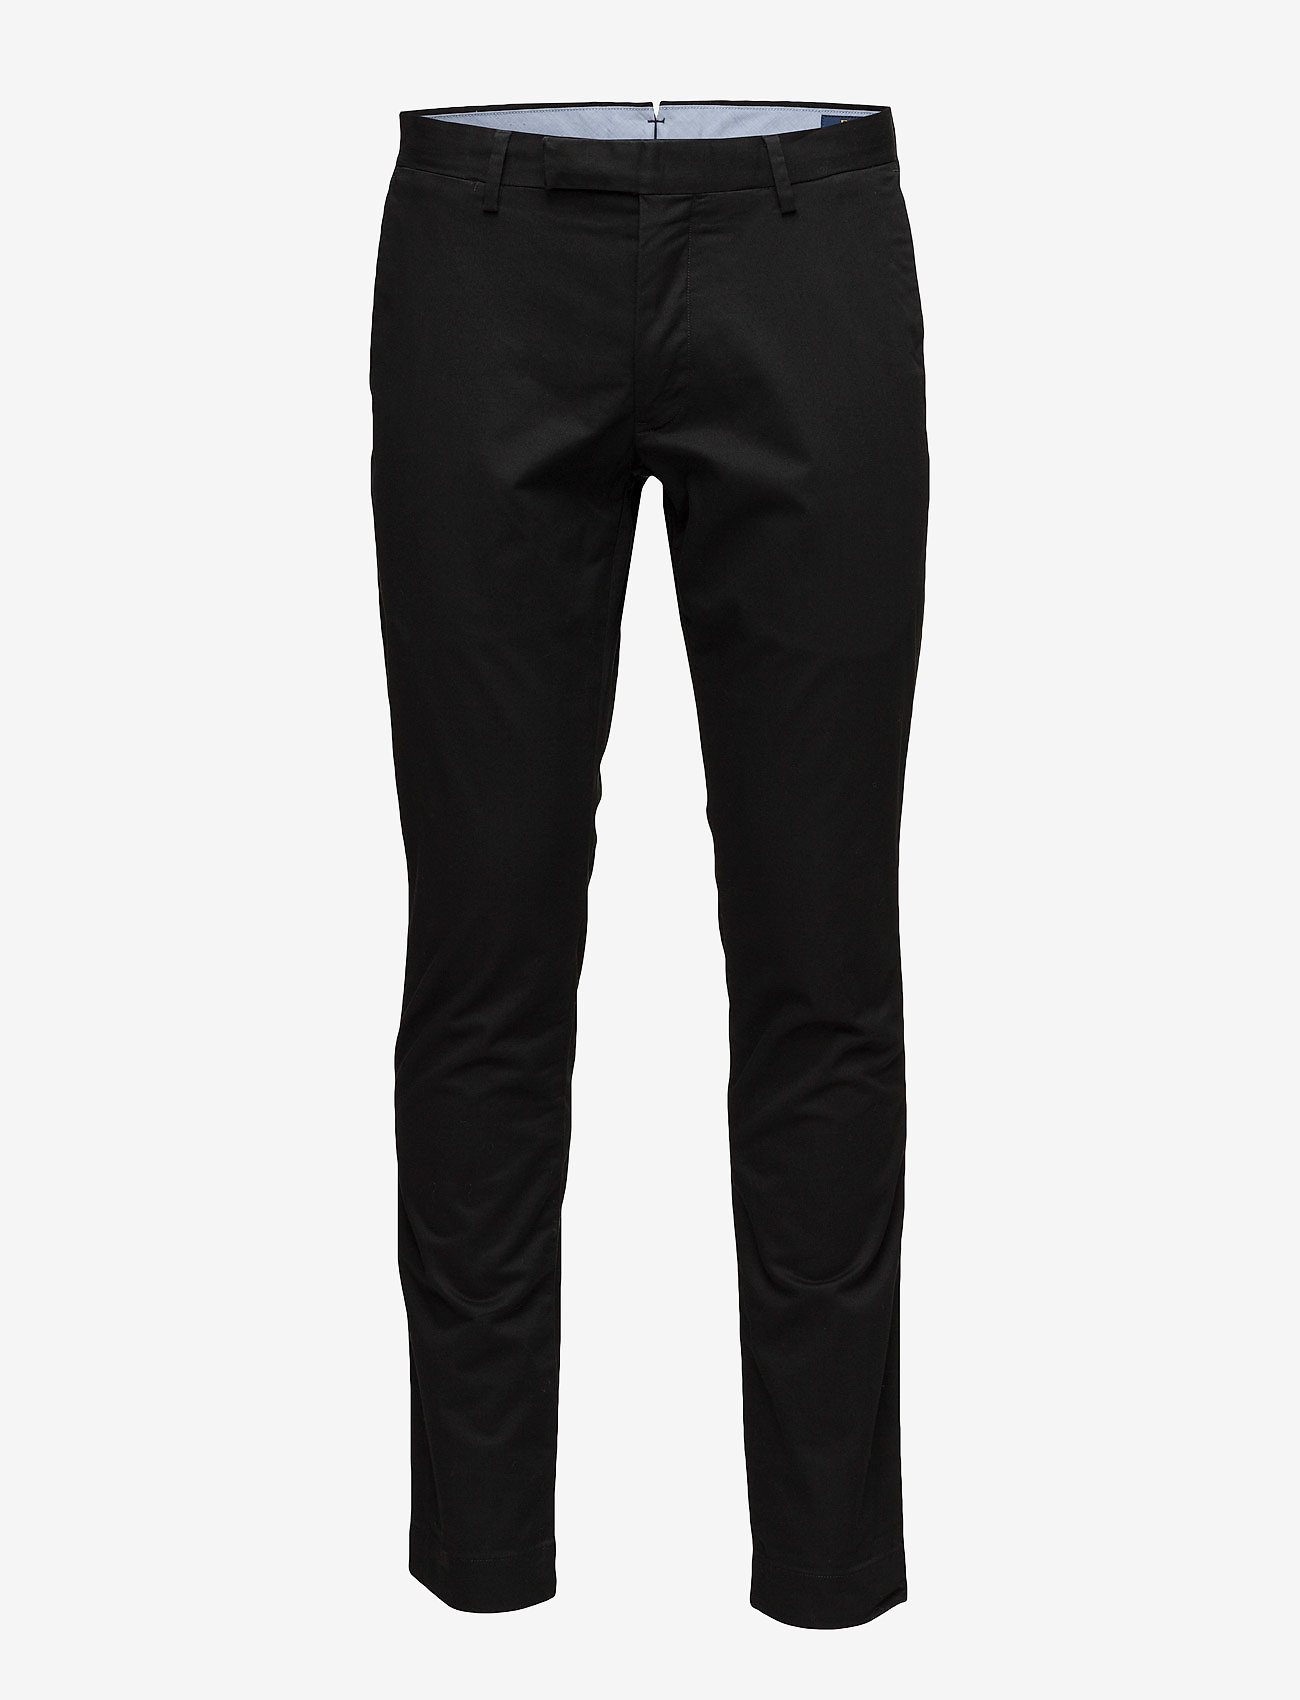 Stretch Tailored Slim Fit Pant Polo Black 74 50 Polo Ralph Lauren Boozt Com Our array of styles will make sure every occasion is catered to! stretch tailored slim fit pant